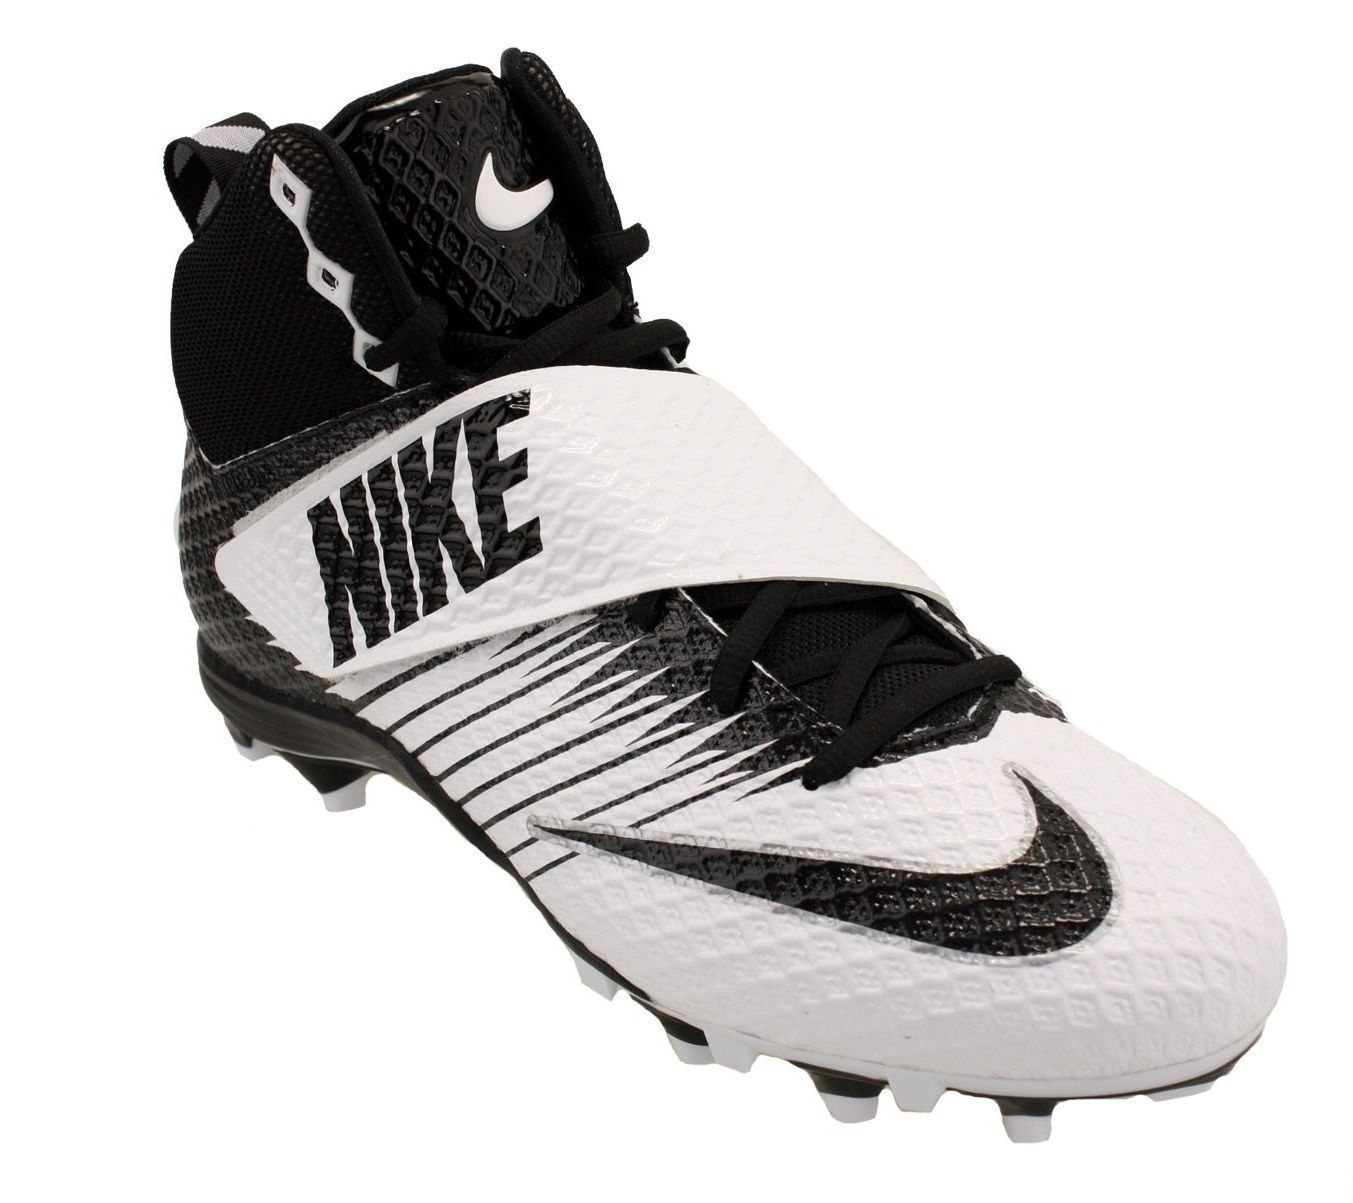 7087bb884 S l1600. S l1600. Previous. Nike LunarBeast STRIKE PRO Football Cleats  833421-100 Black   White Size 14